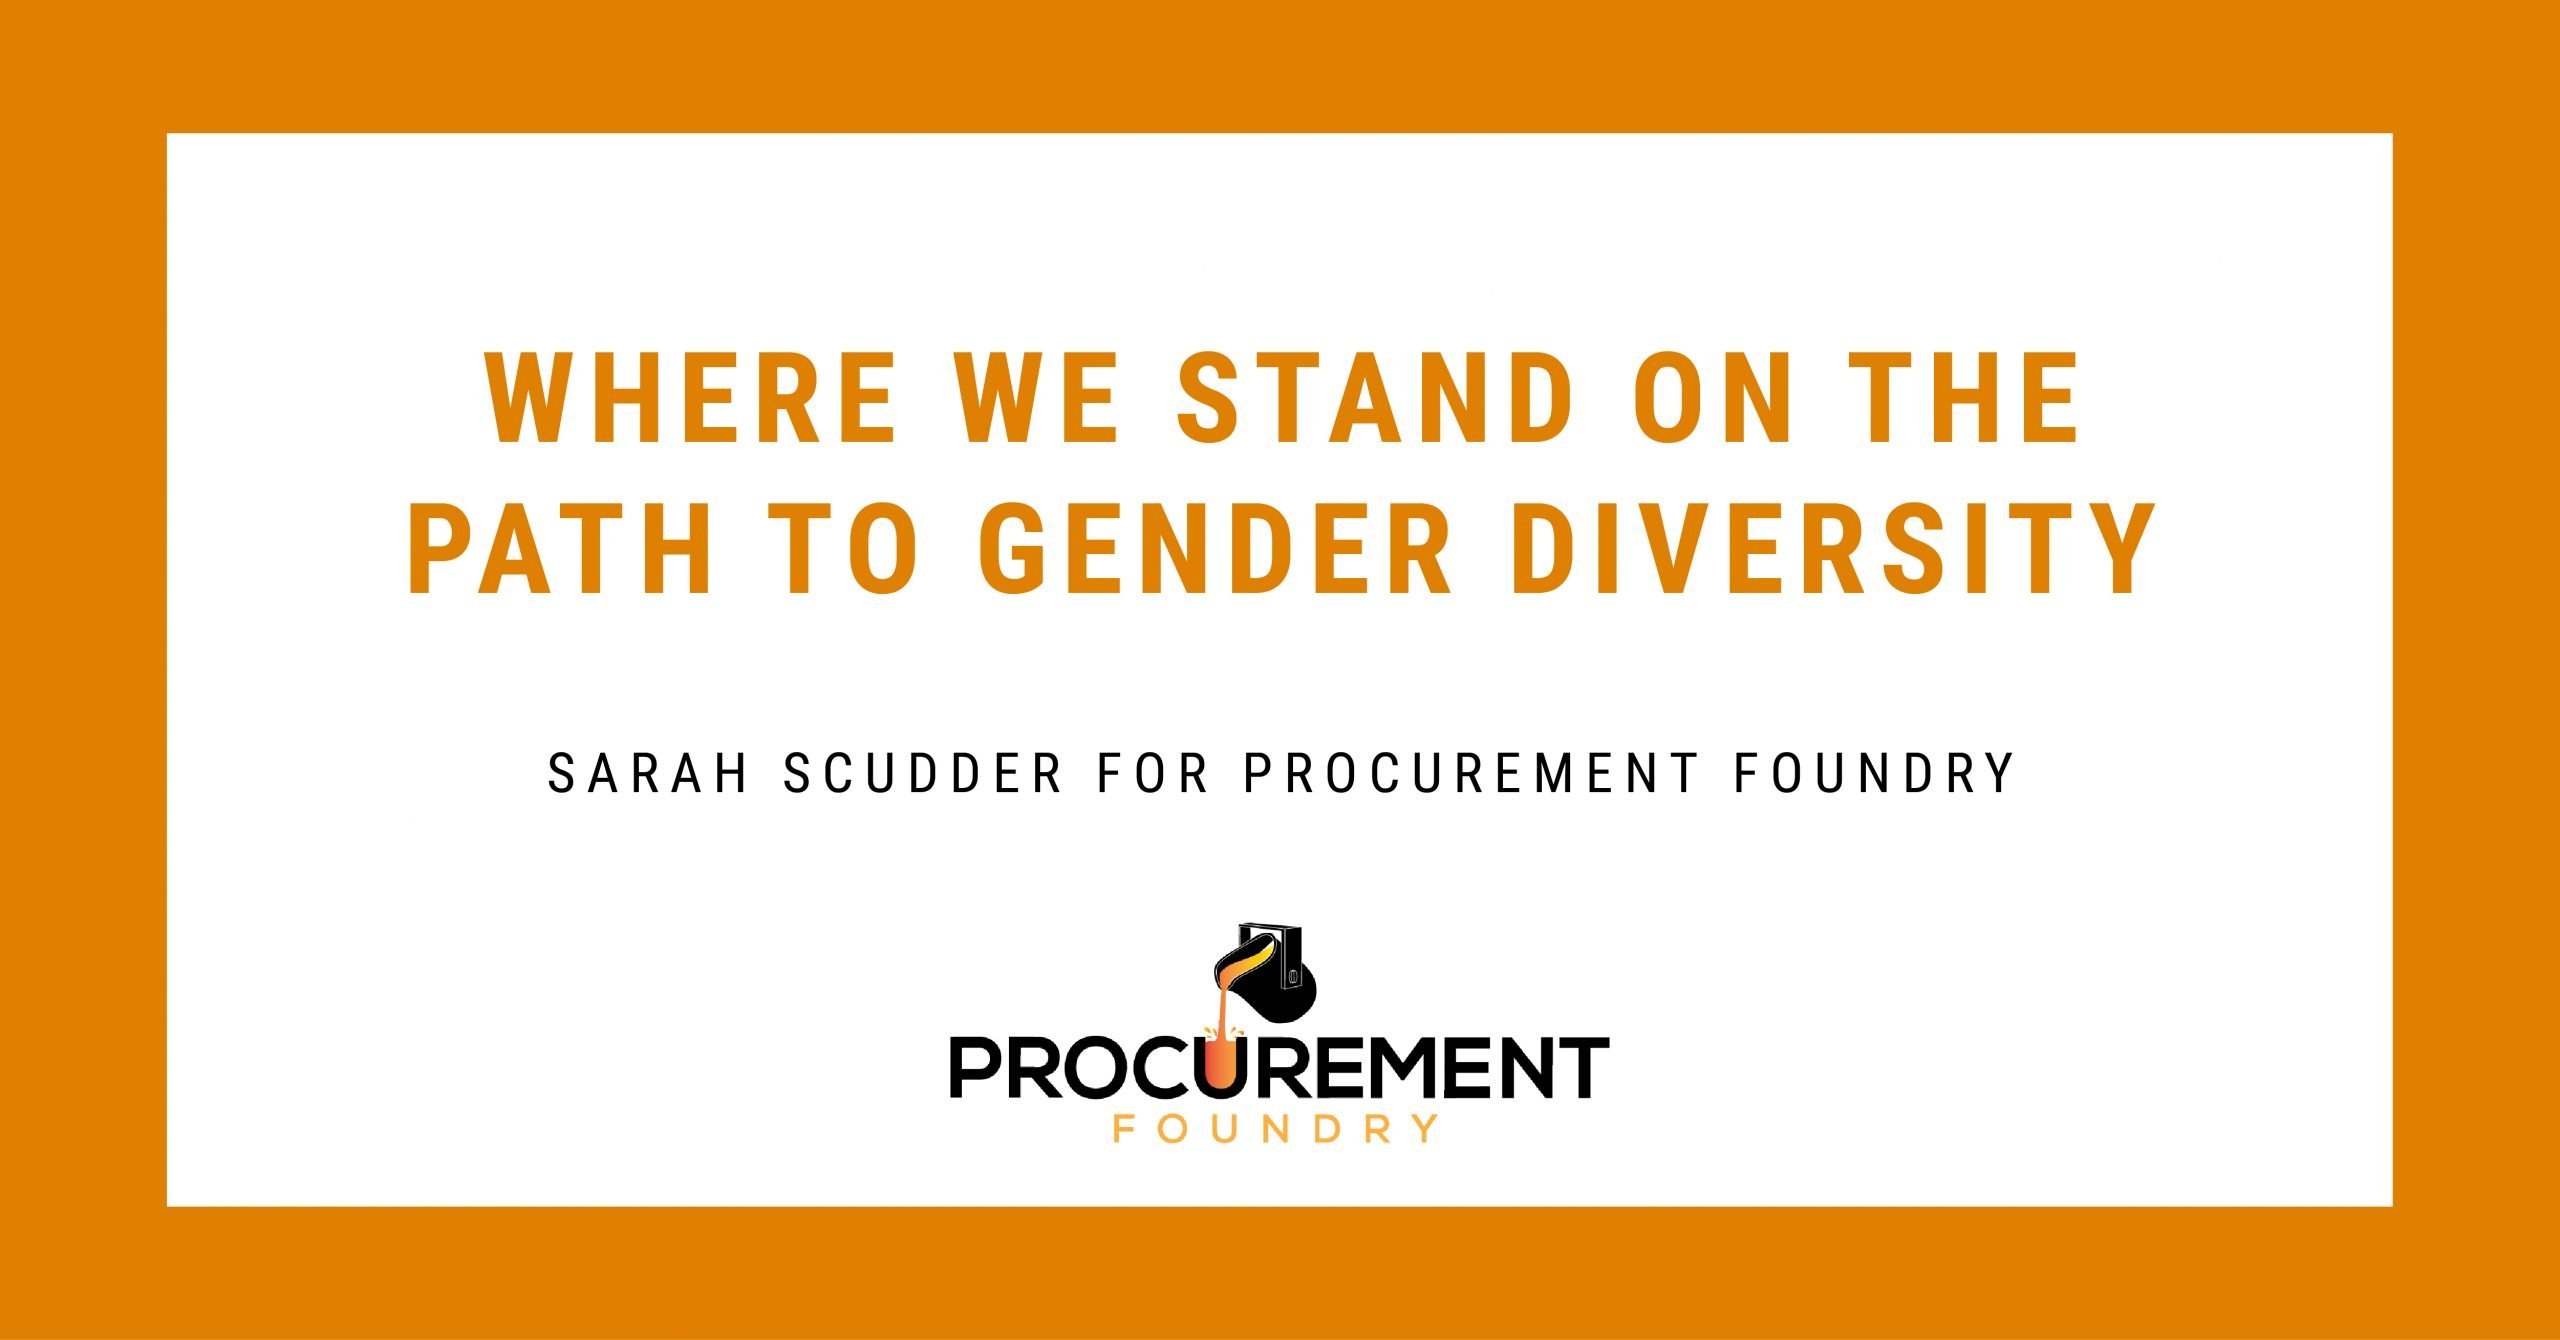 Where We Stand on the Path to Gender Diversity